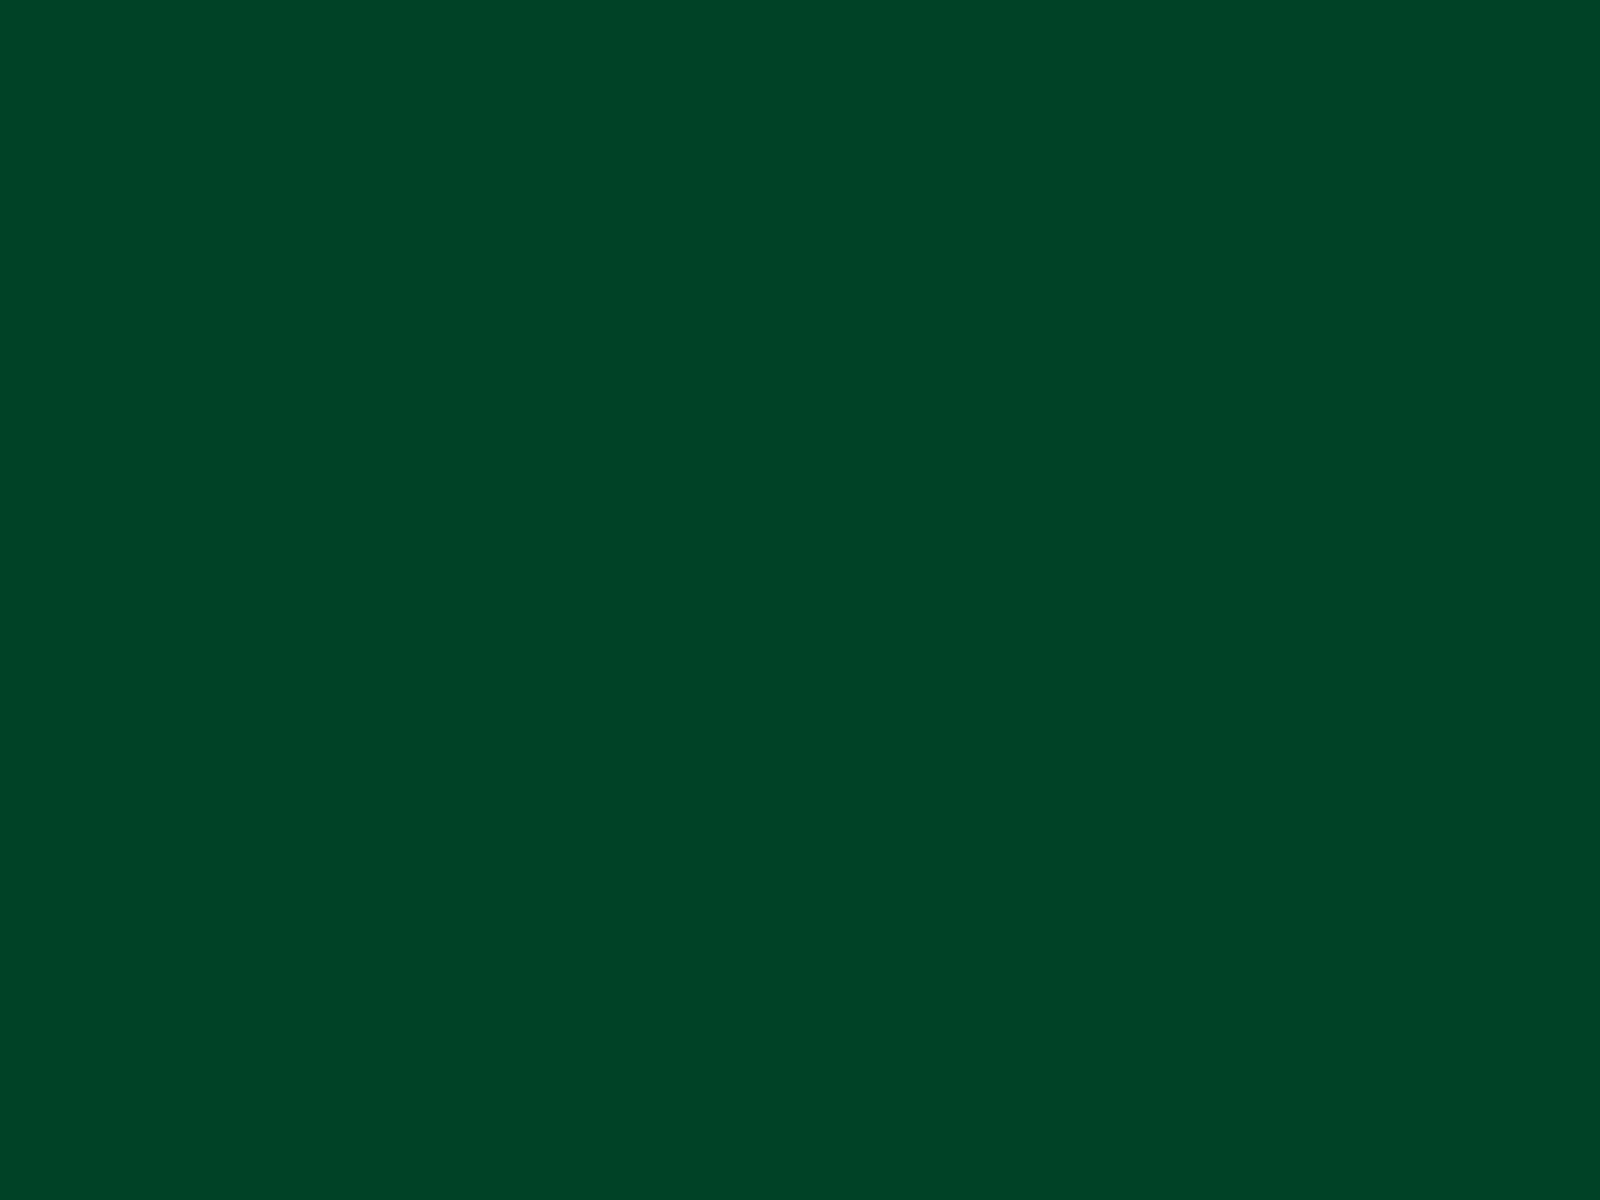 1600x1200 British Racing Green Solid Color Background